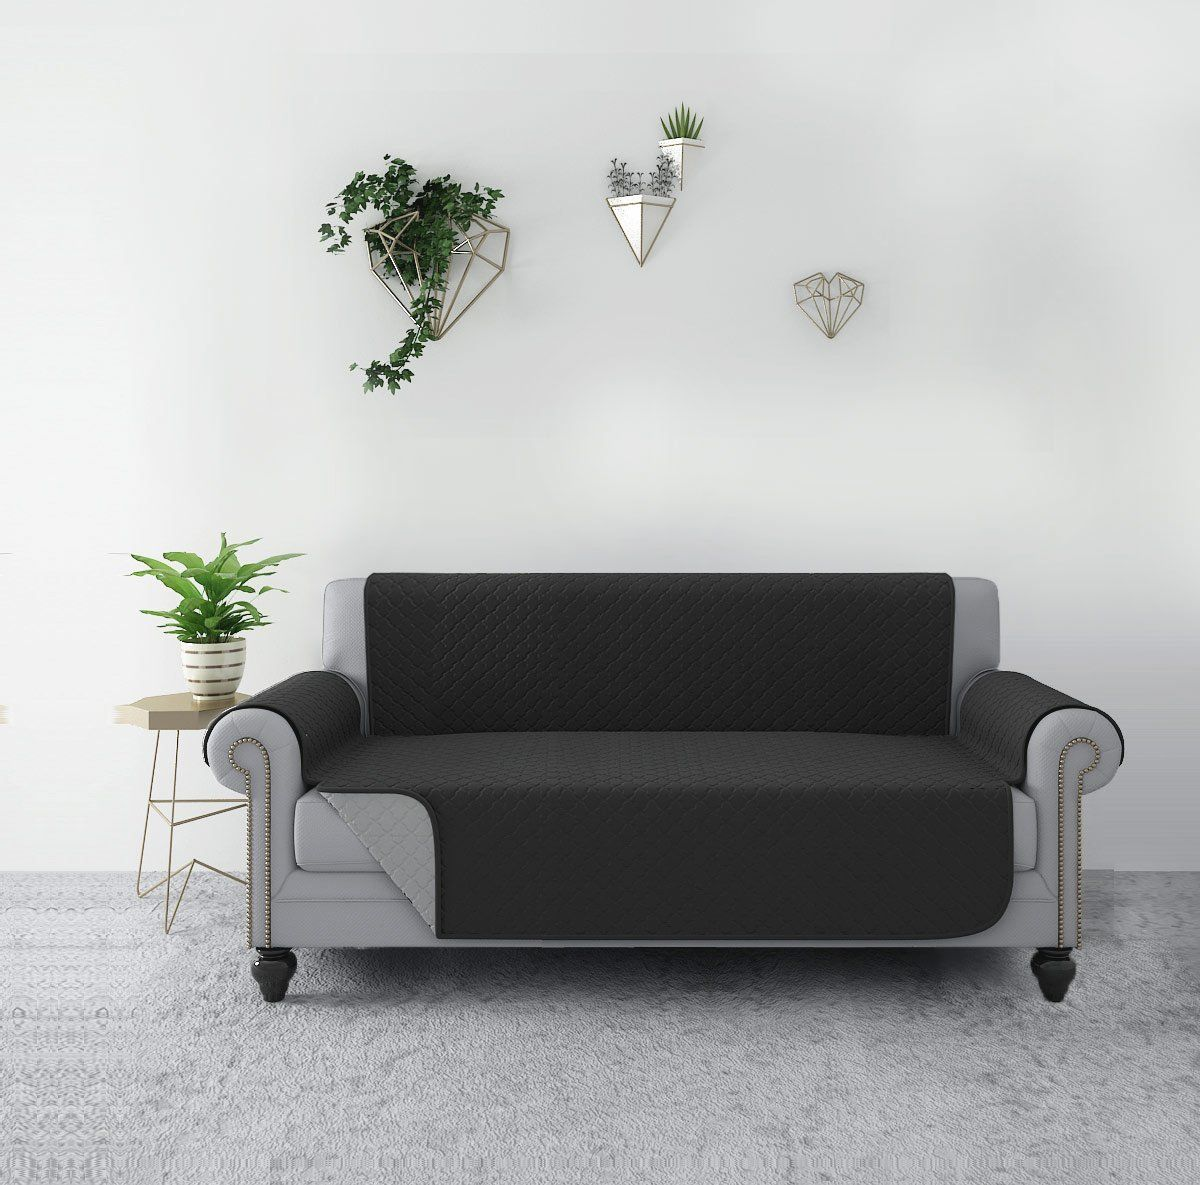 Rhf Reversible Sofa Cover Couch Covers For 3 Cushion Couch Couch